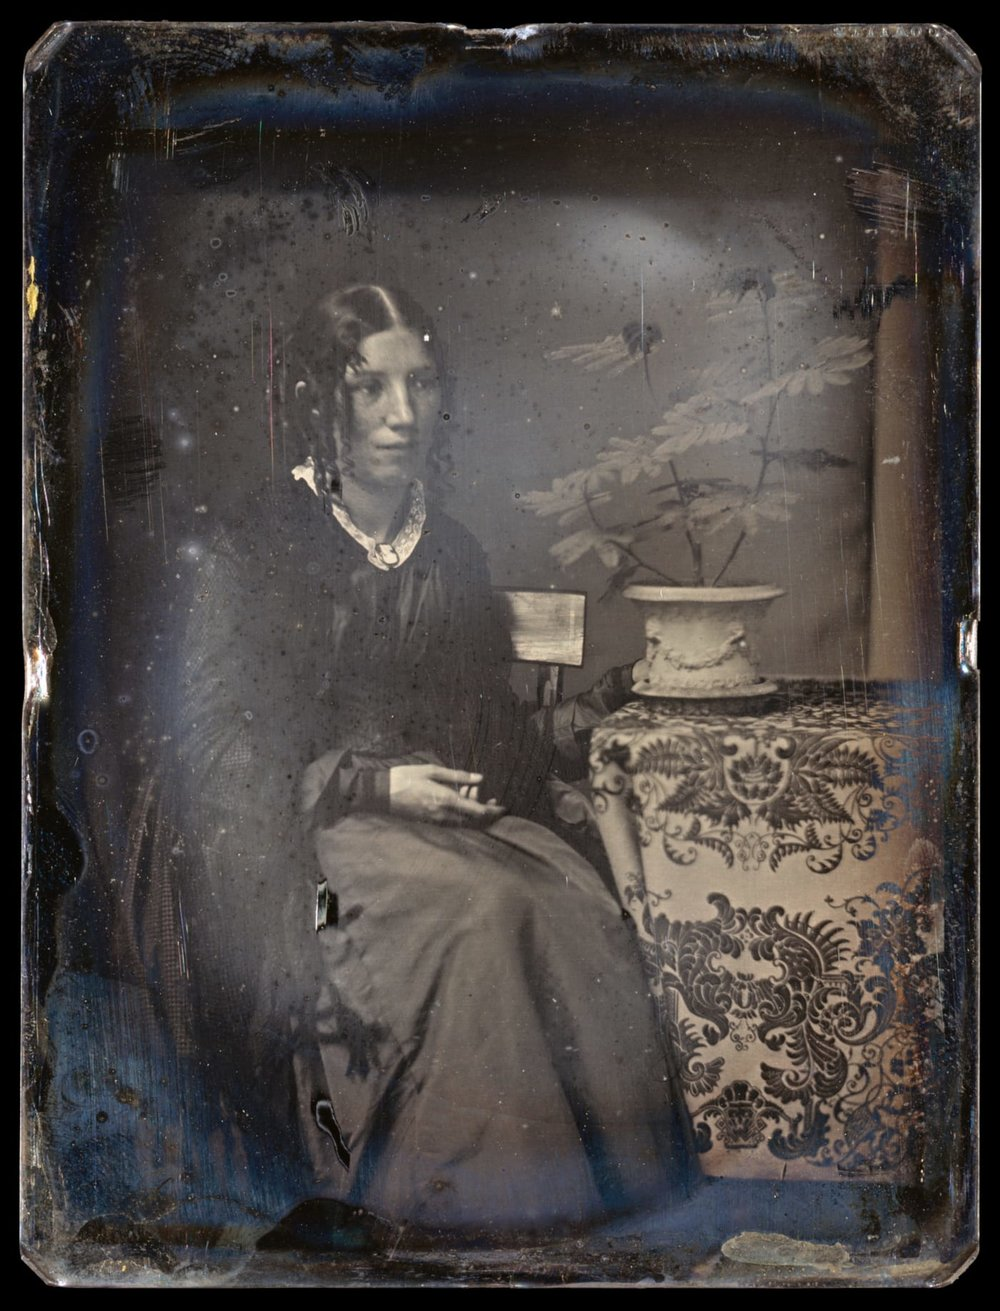 A daguerrotype of Harriet Beecher Stowe, circa 1850 (The Metropolitian Museum of Art).